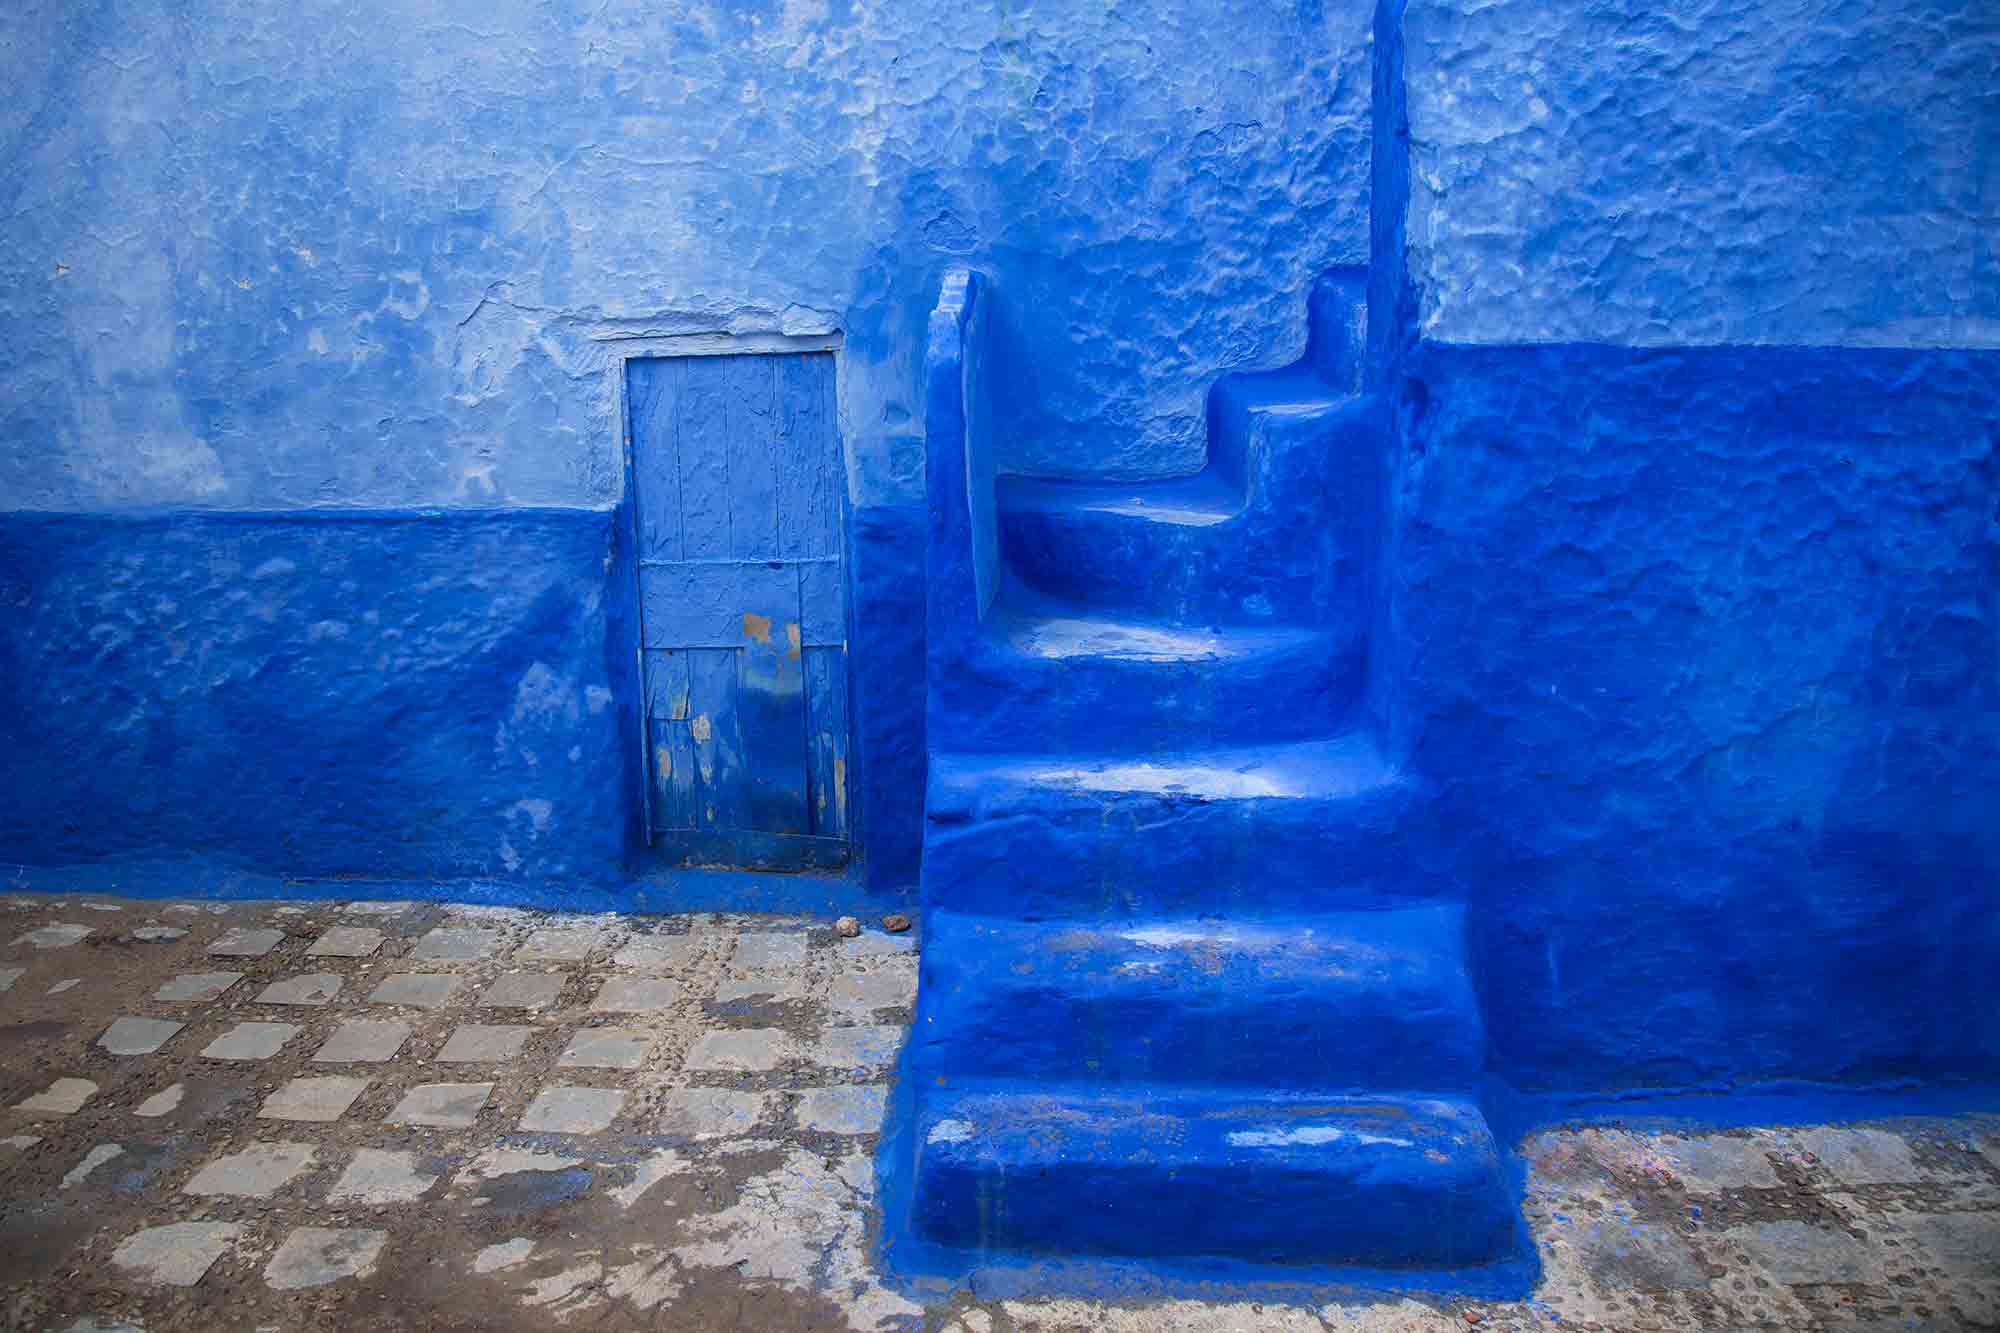 Bright-blue buildings and narrow lanes cover Chefchaouen. © ULLI MAIER & NISA MAIER